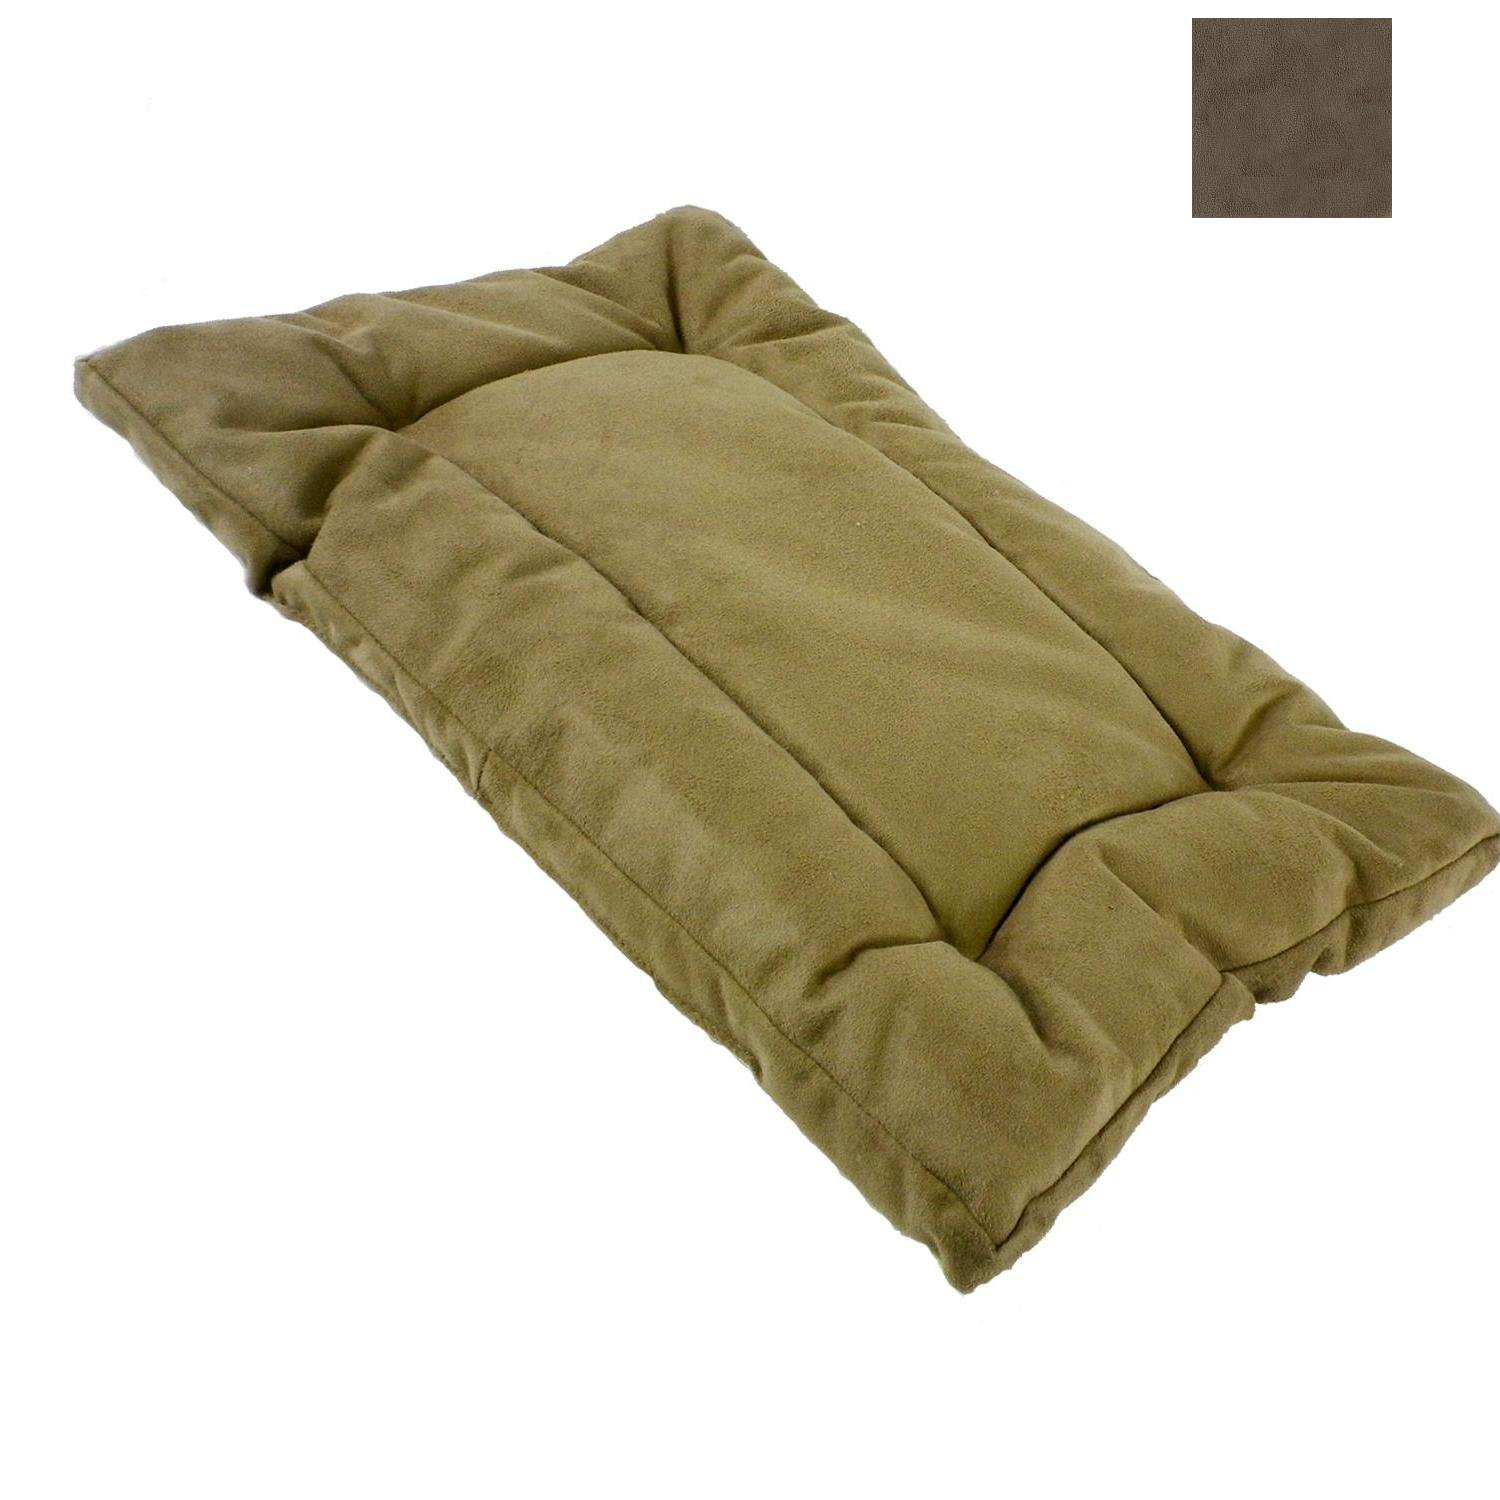 Snoozer Outlast Chocolate Dog Crate Pad